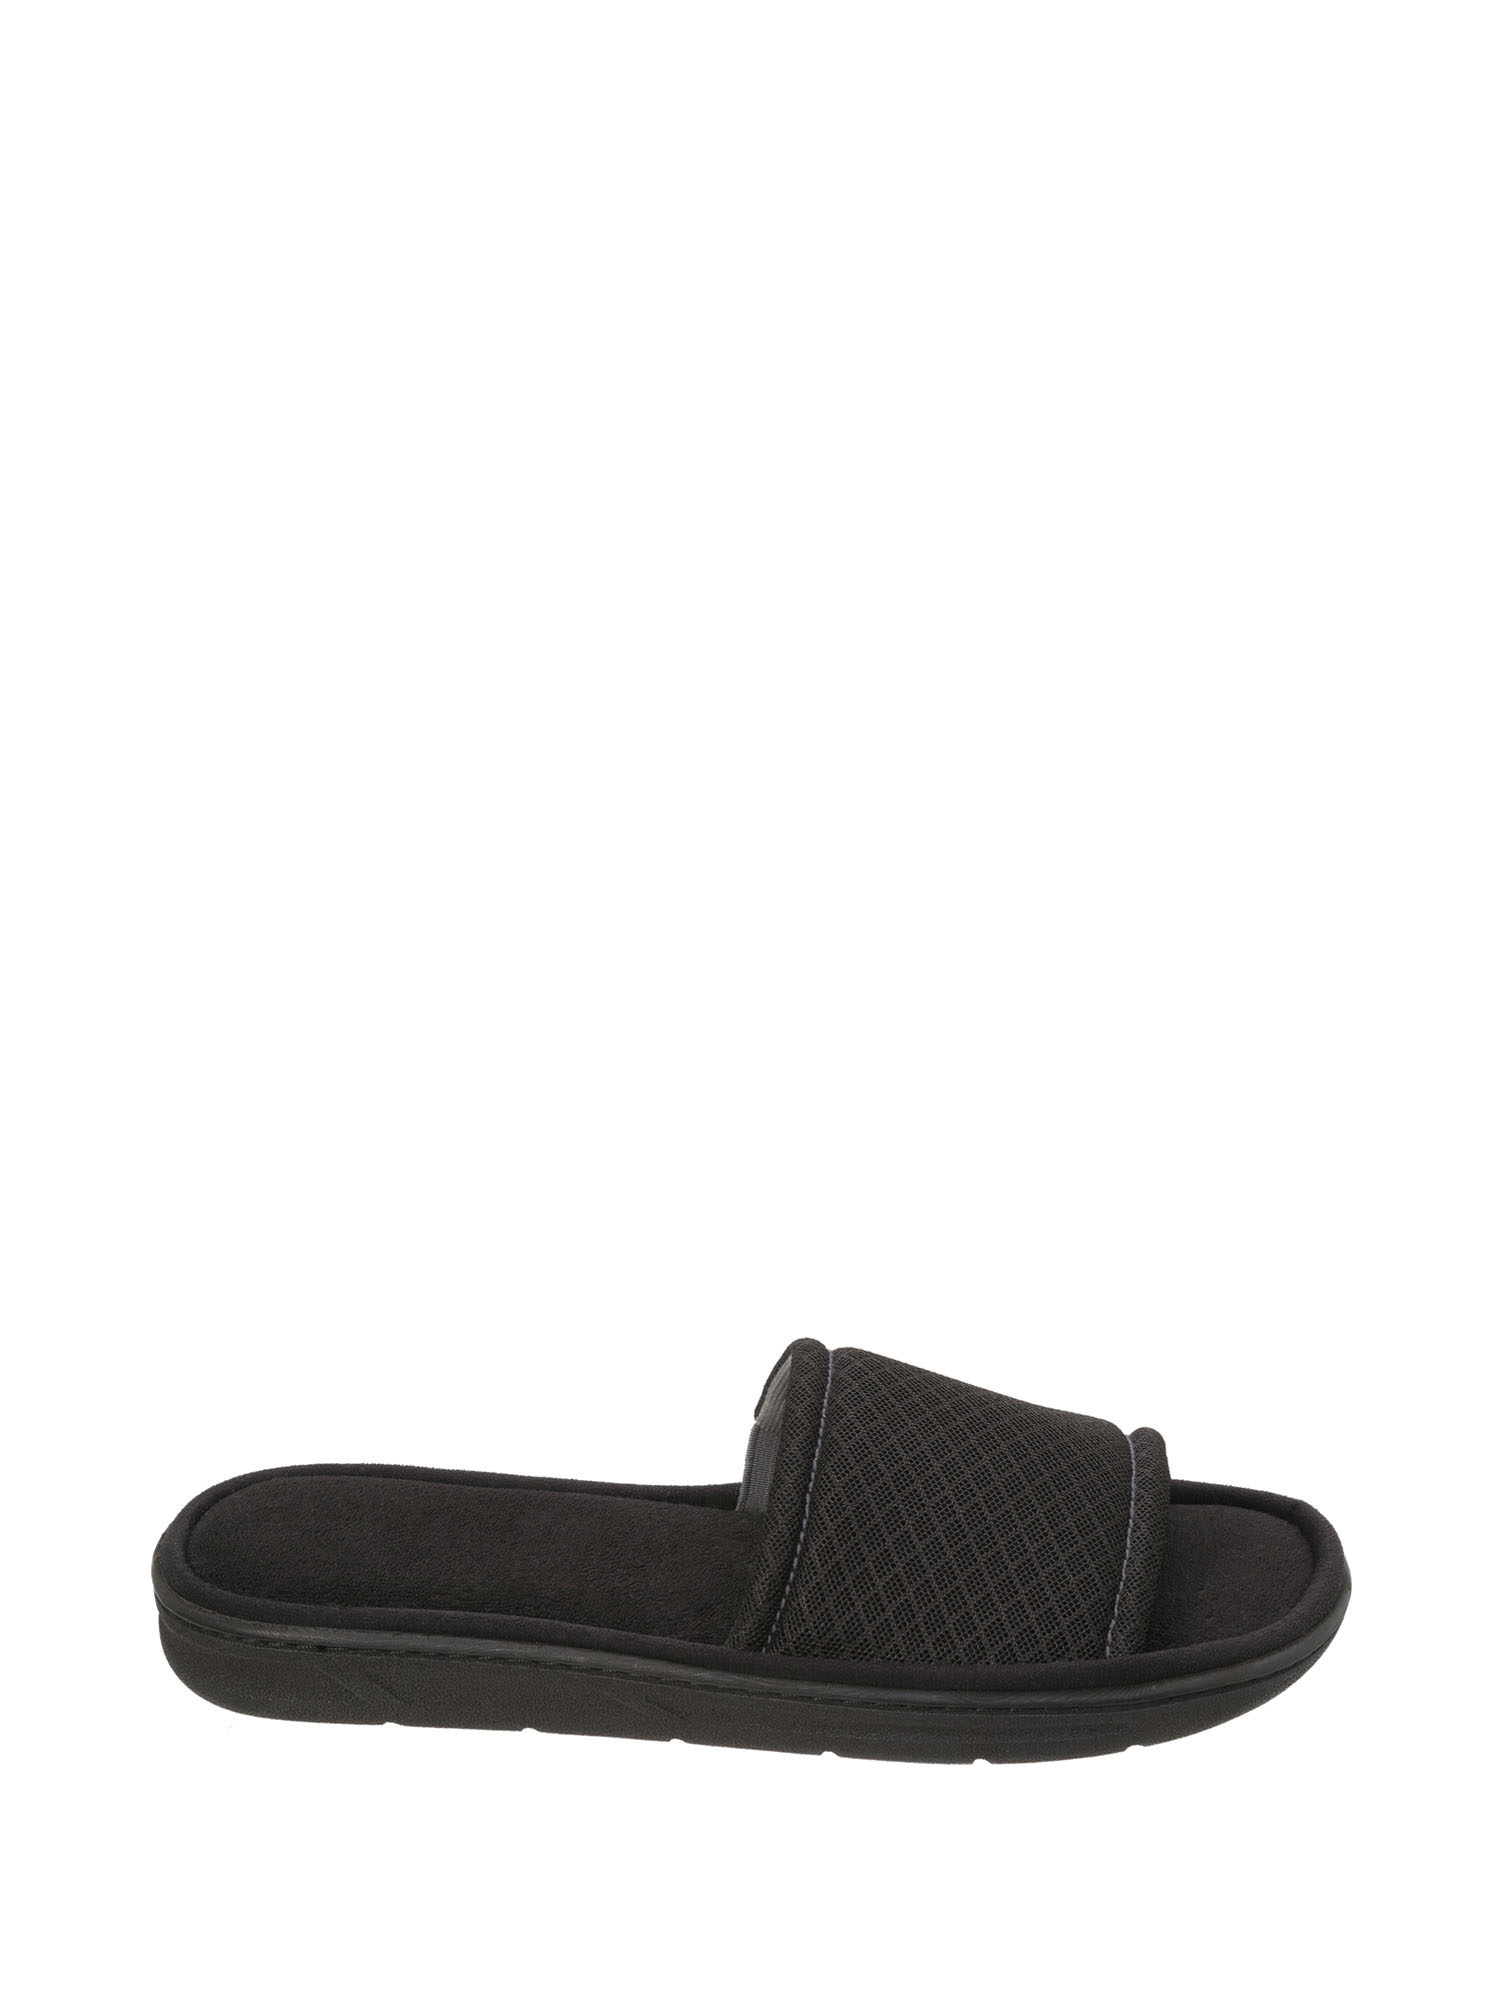 DF by Dearfoams Men's Mesh Slide Slipper